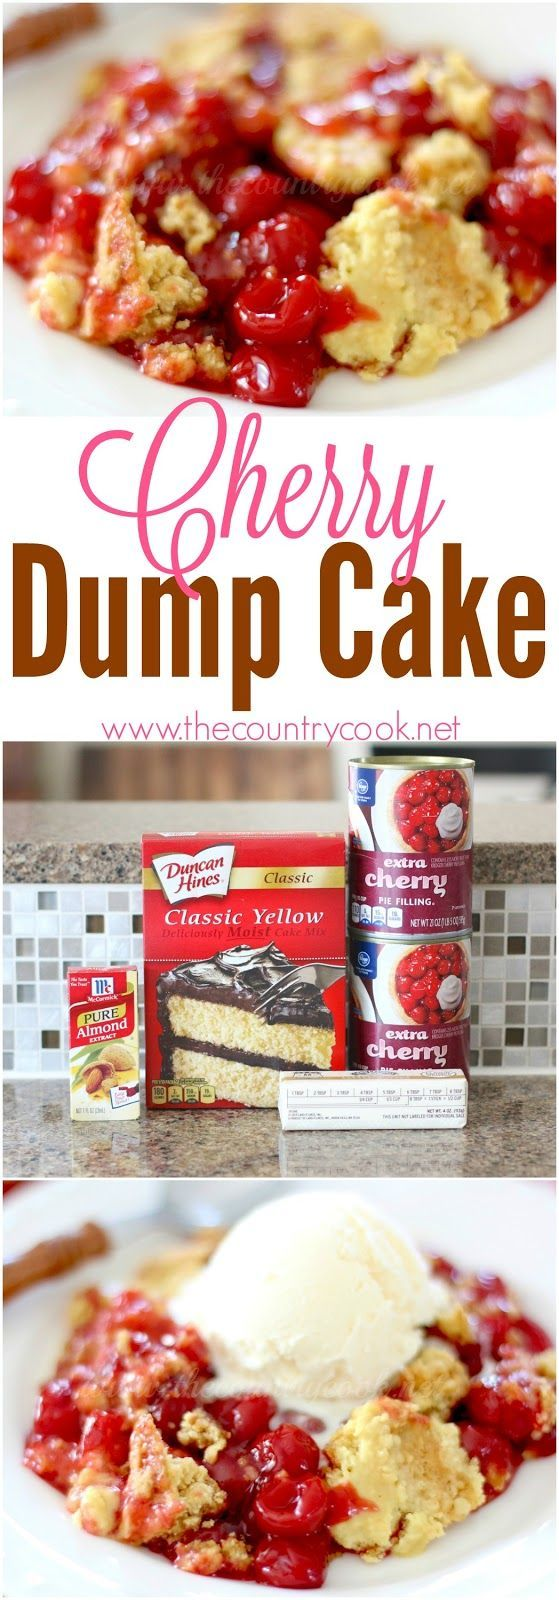 Cherry Dump Cake recipe from The Country Cook - only 4 ingredients! One of my…